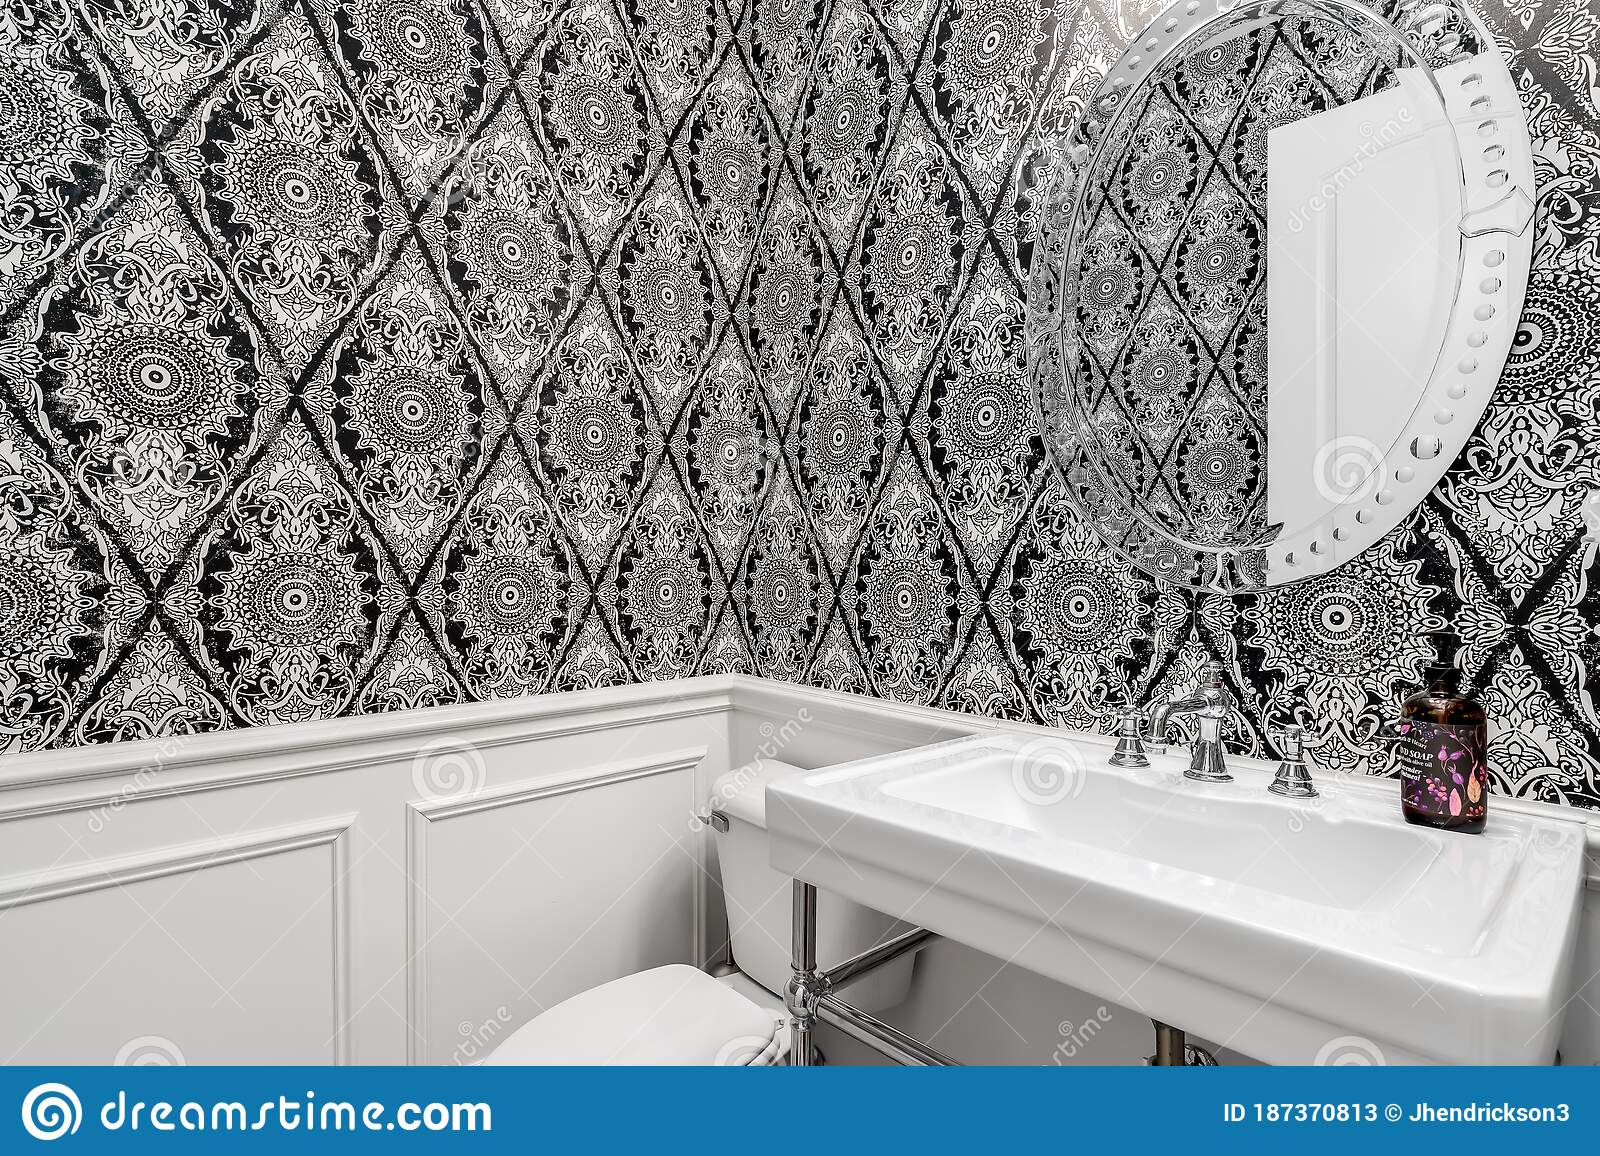 A Small Bathroom With White And Black Patterned Wallpaper Editorial Stock Photo Image Of Eclectic Design 187370813